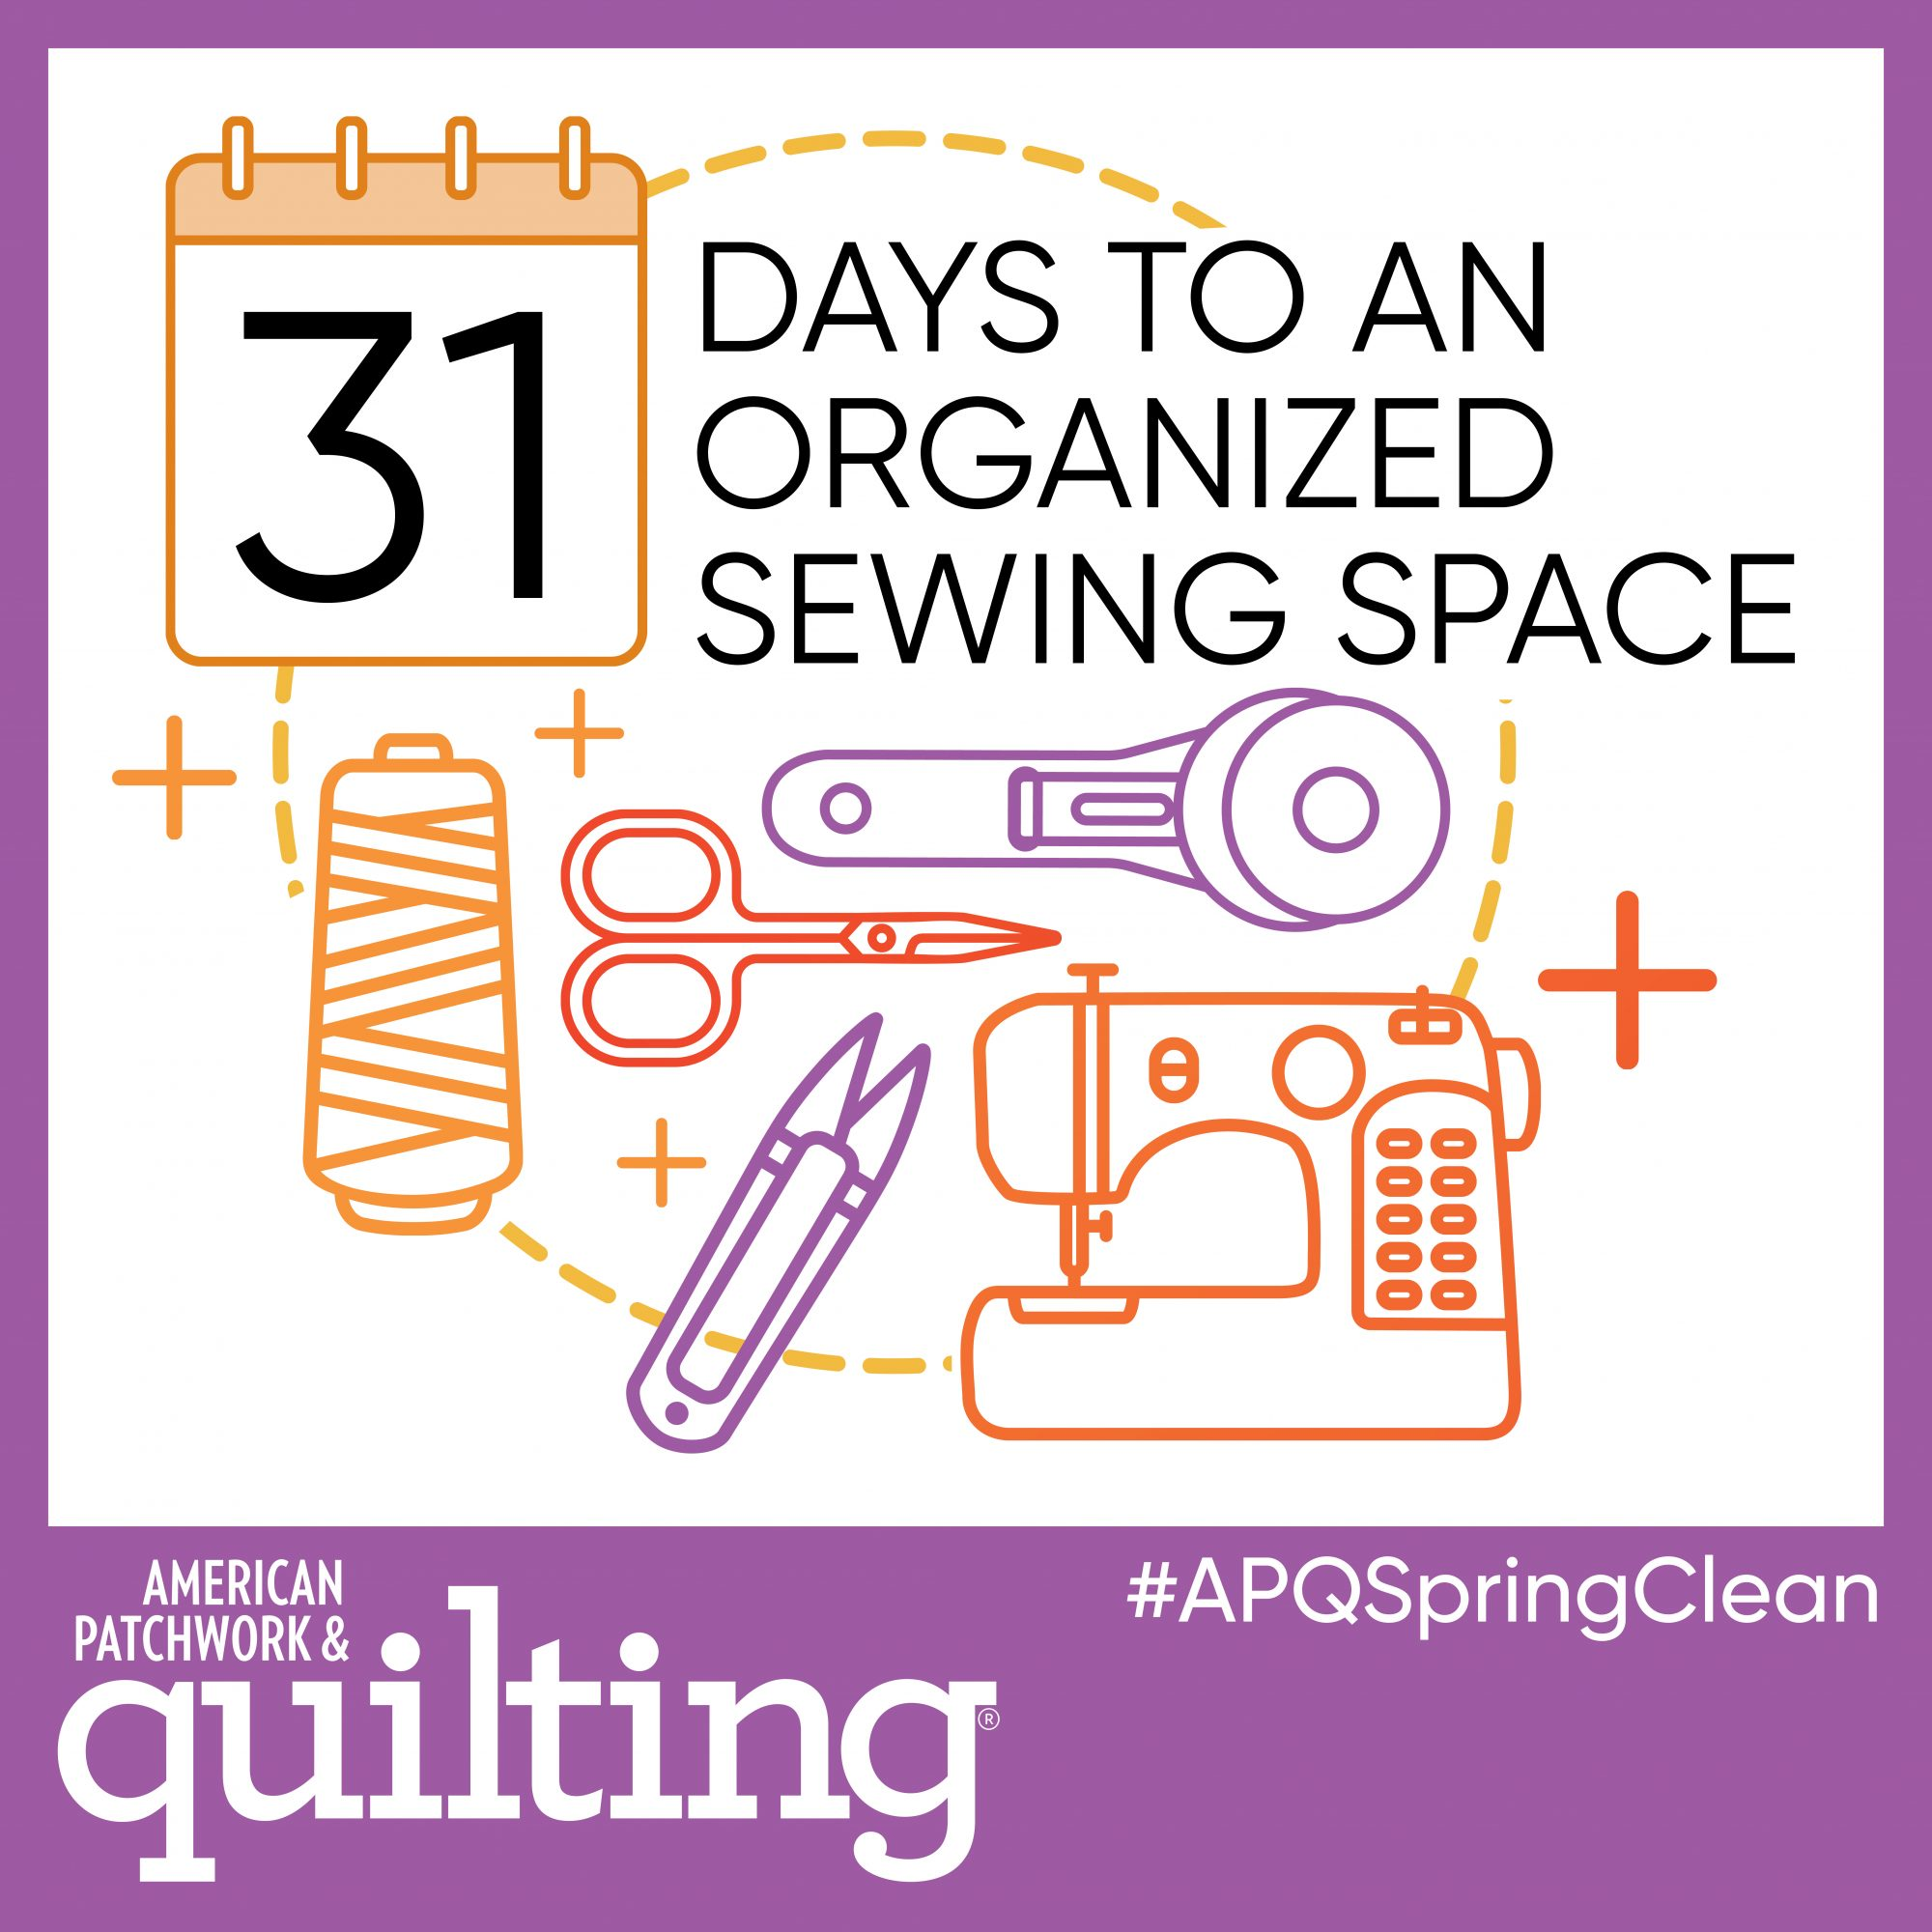 31 Days to an Organizing Sewing Space